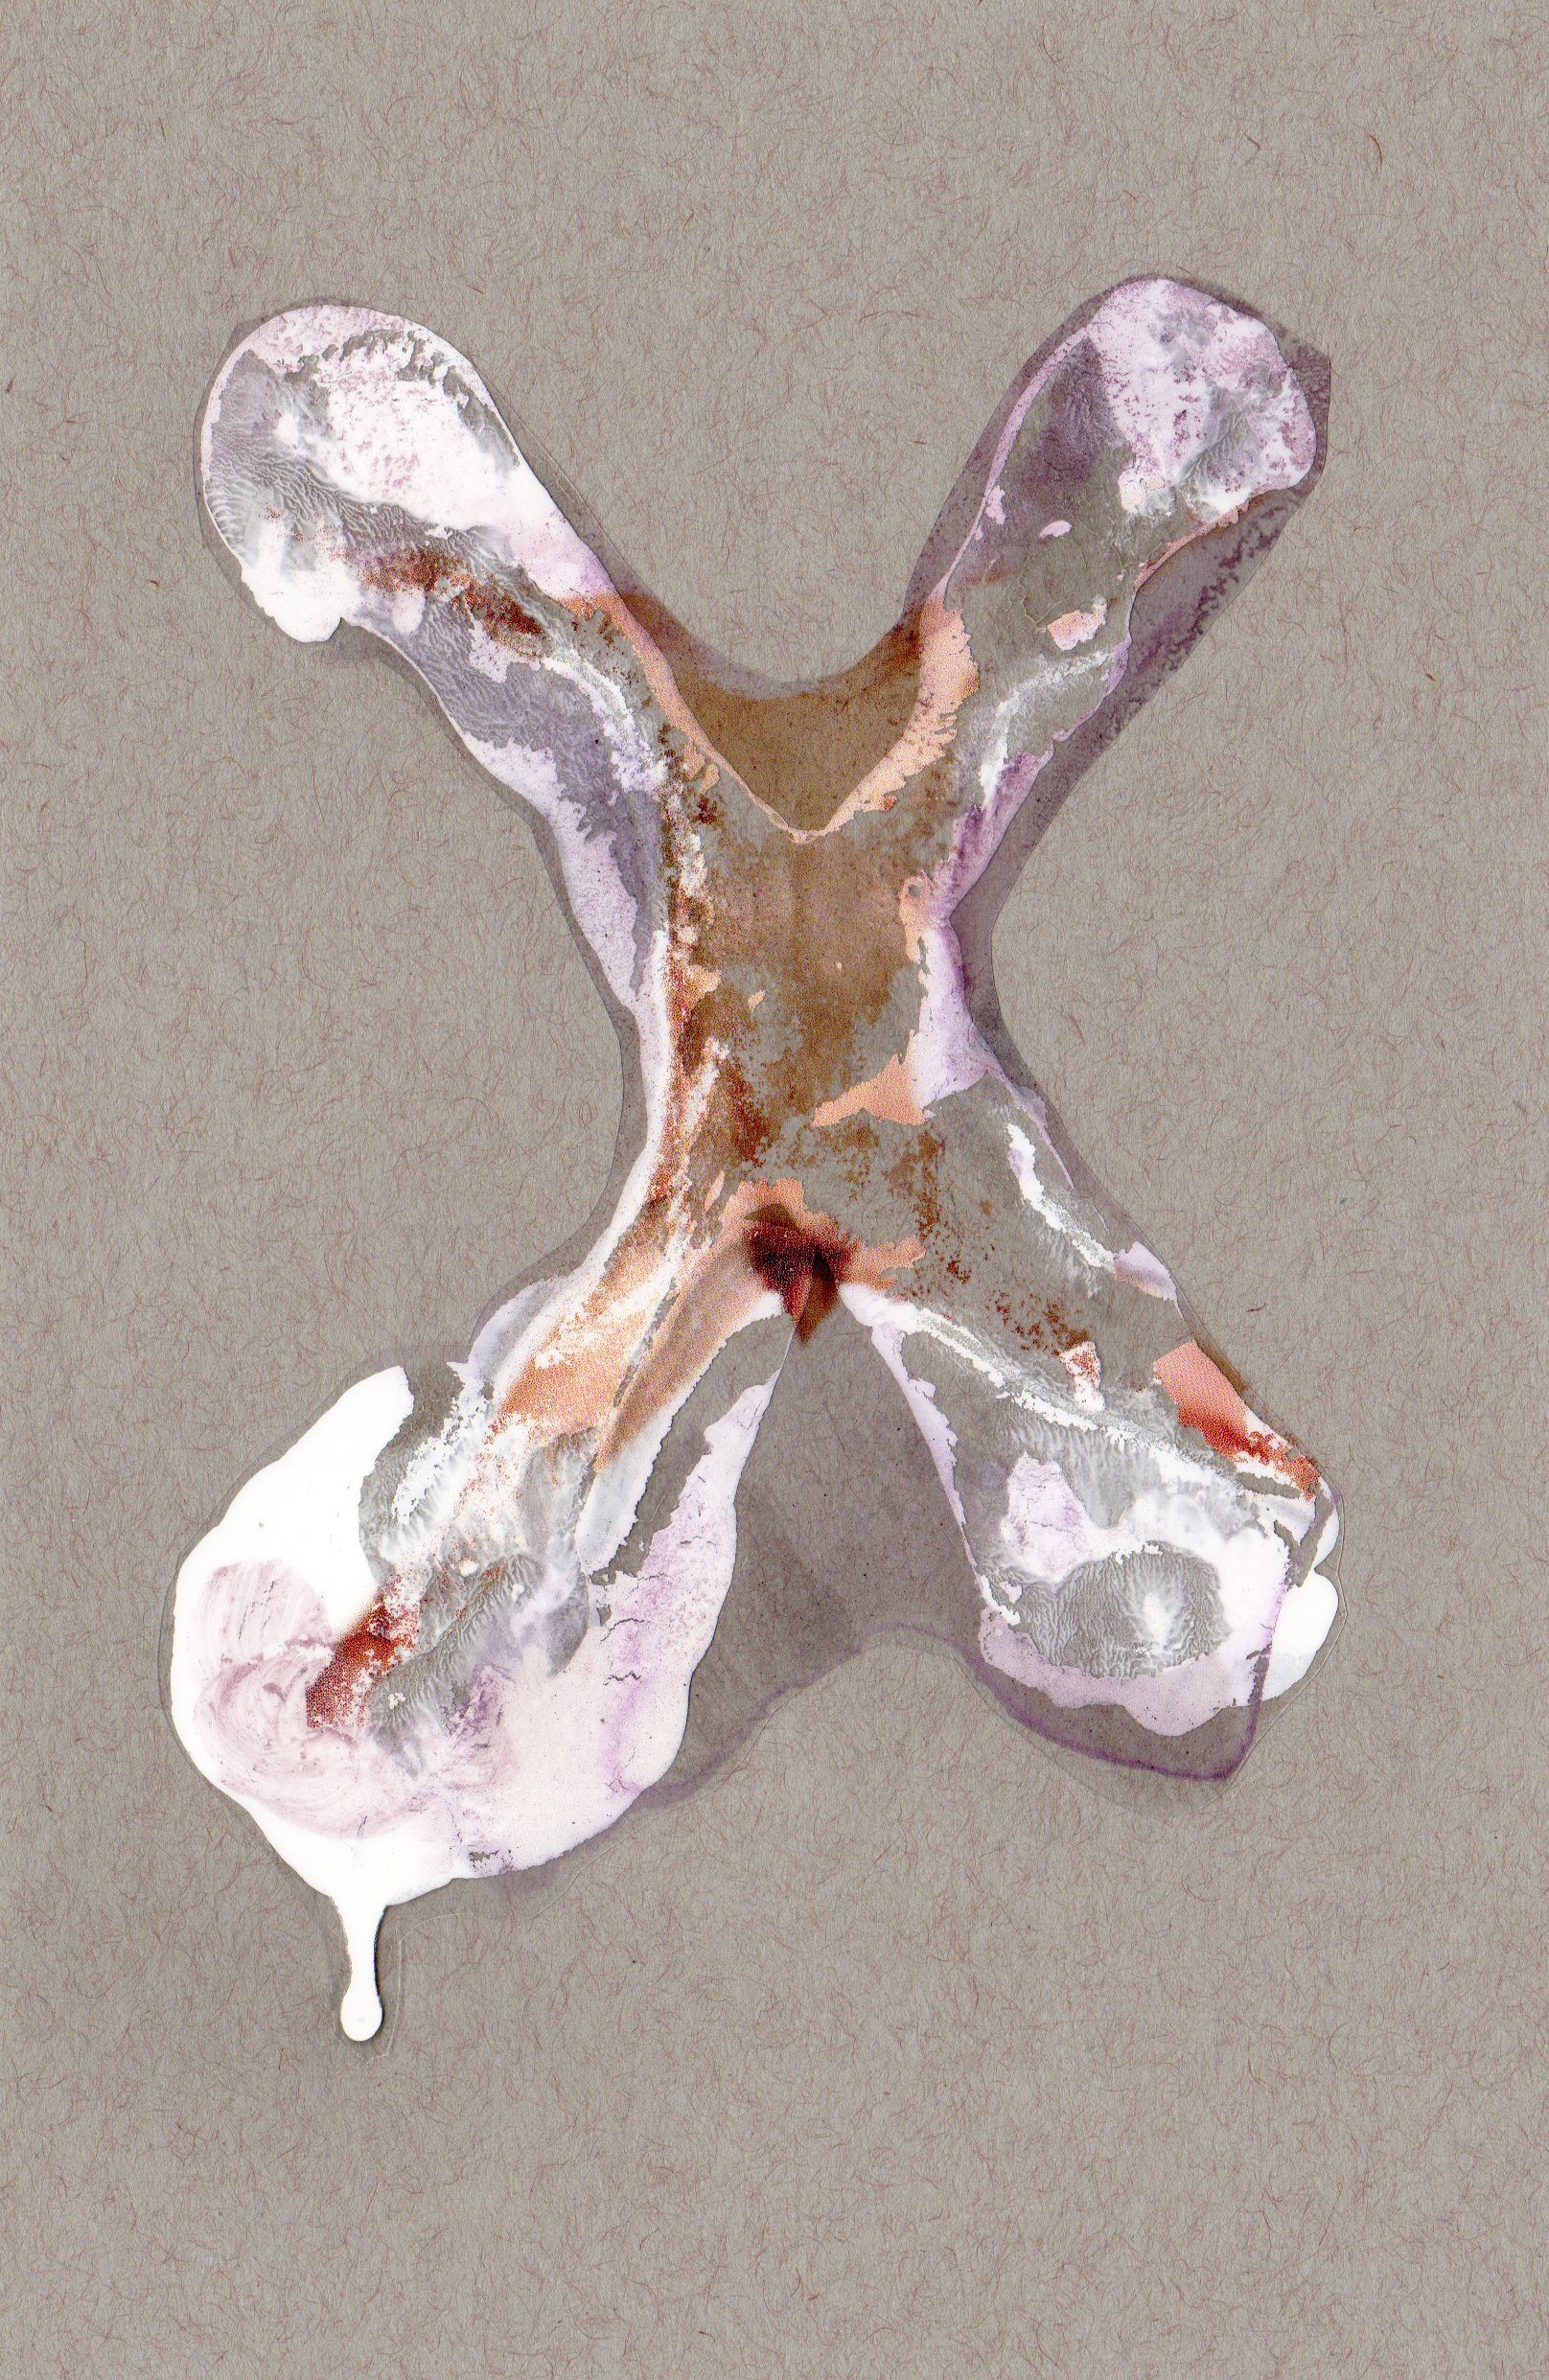 X, 2014, paint transparency archival ink and paper, 8.5x5.5 inches